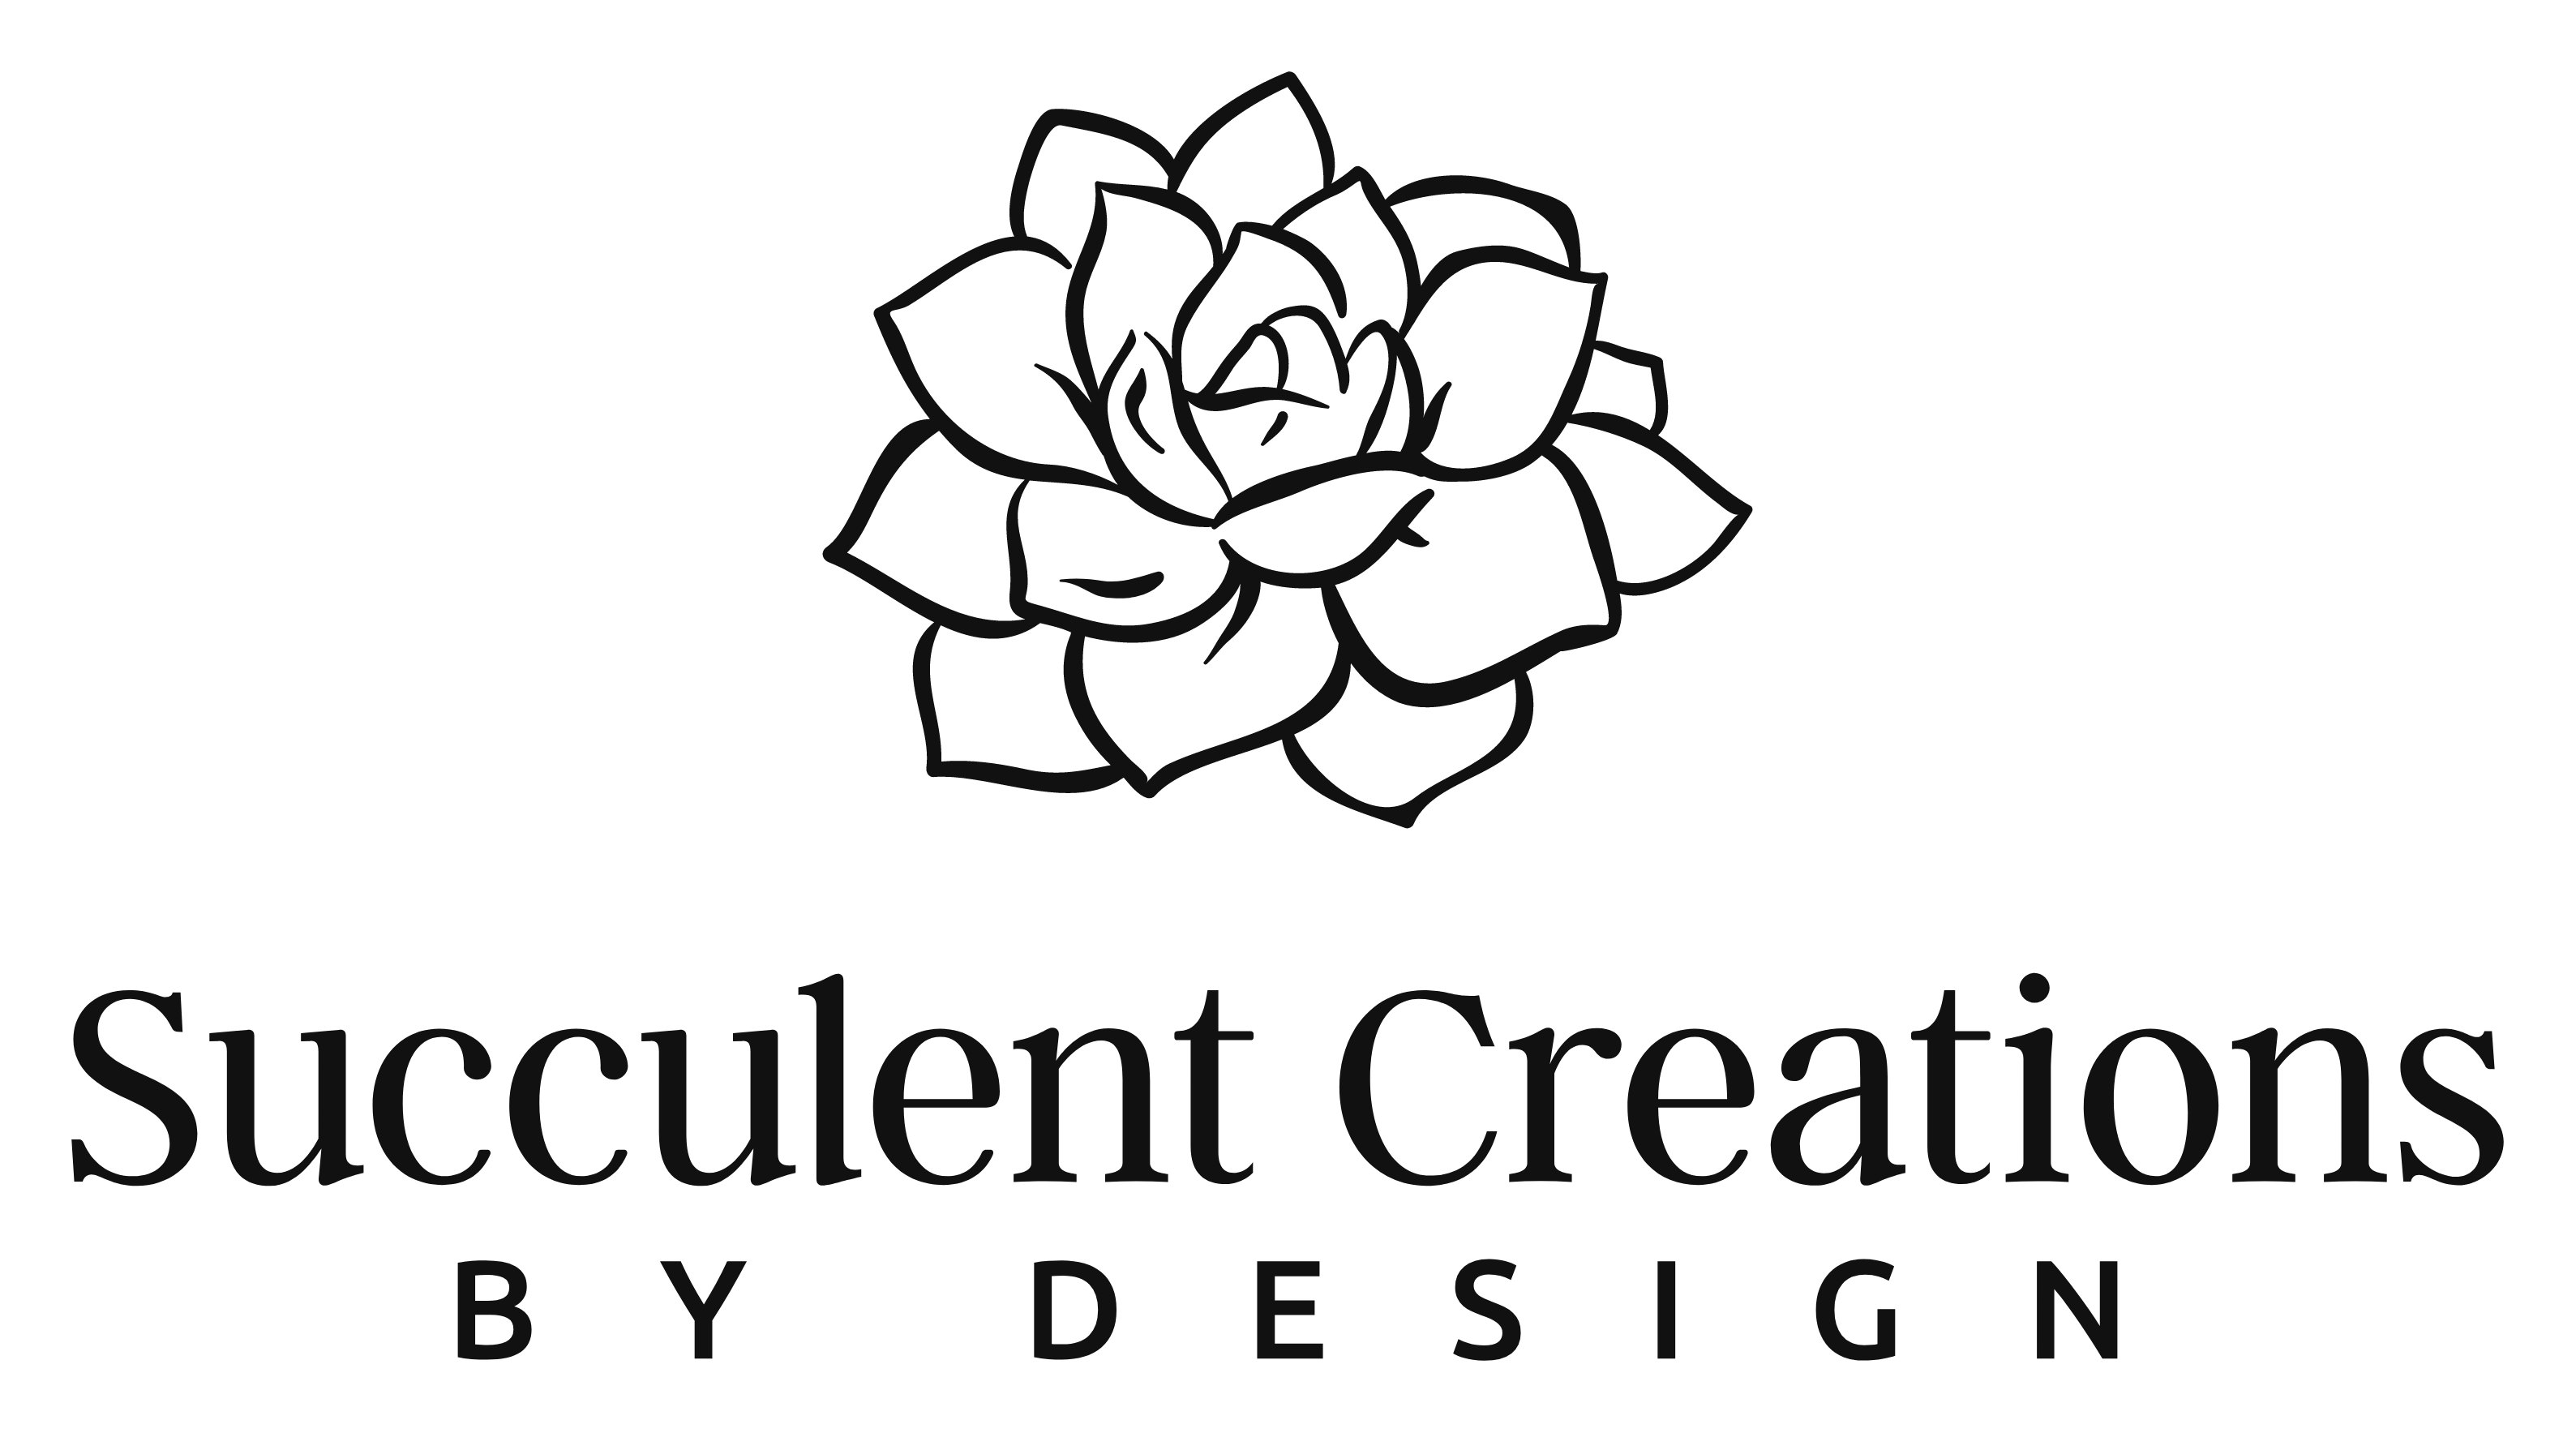 Succulent Creations by Design